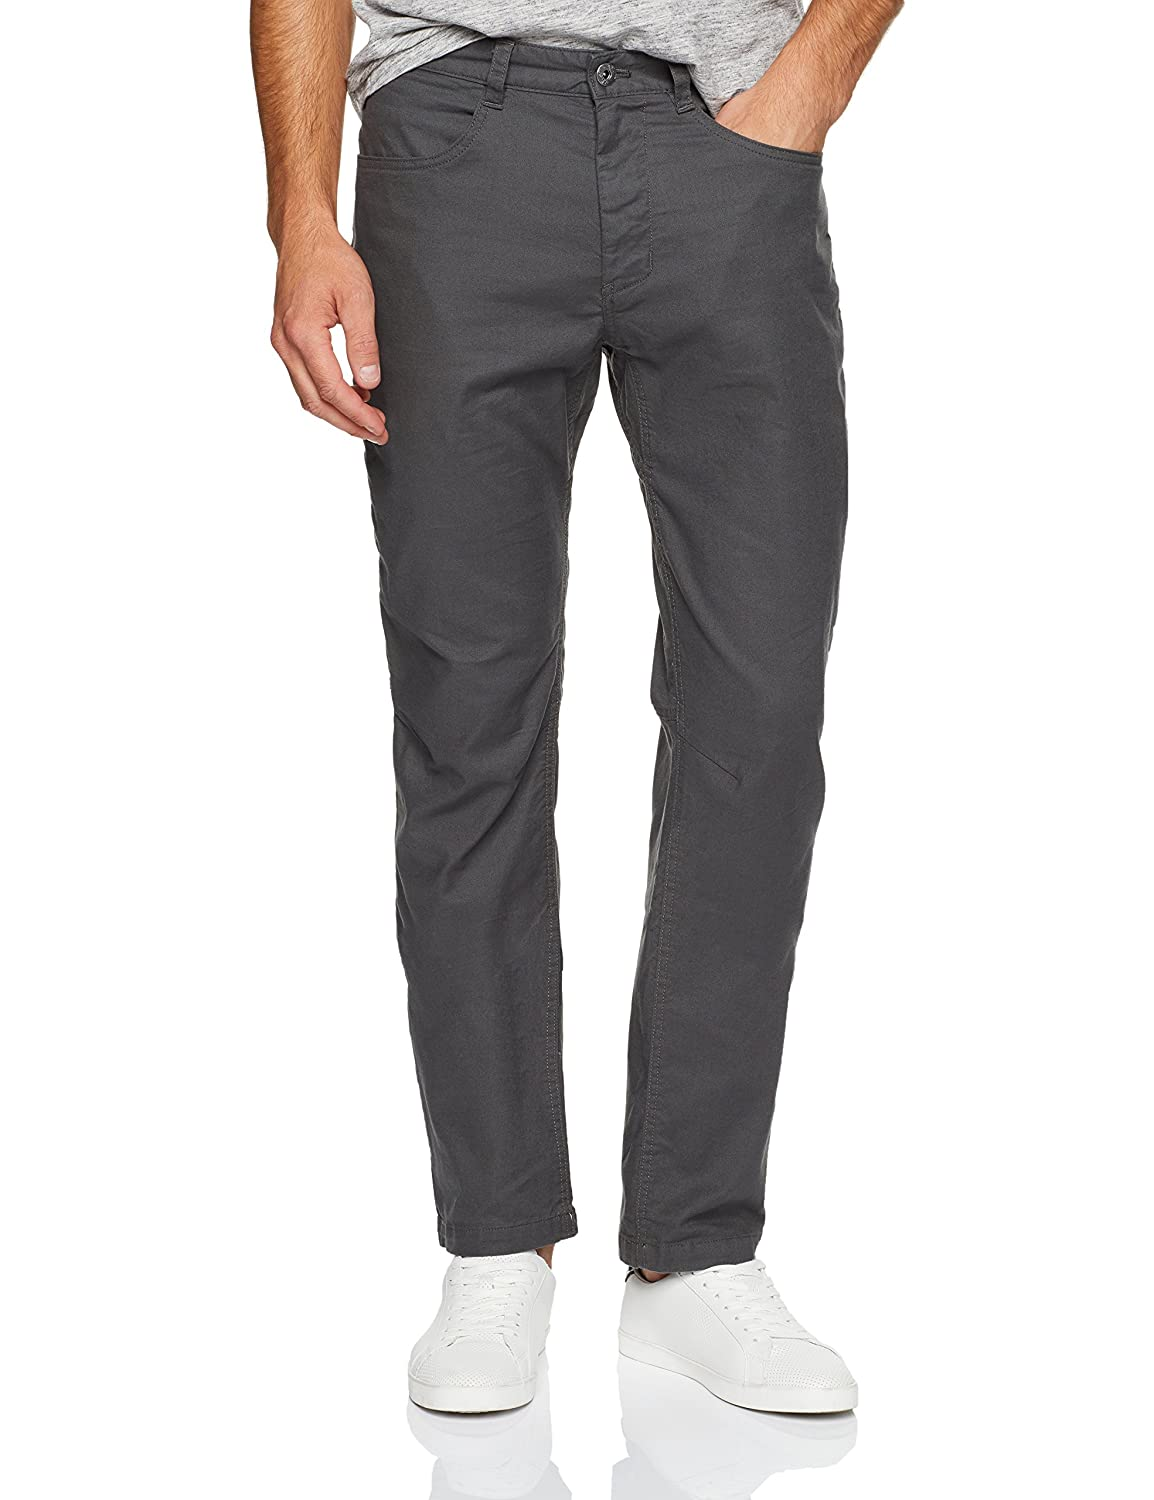 8057f191c THE NORTH FACE Men's Relaxed Motion Pants: Amazon.co.uk: Clothing